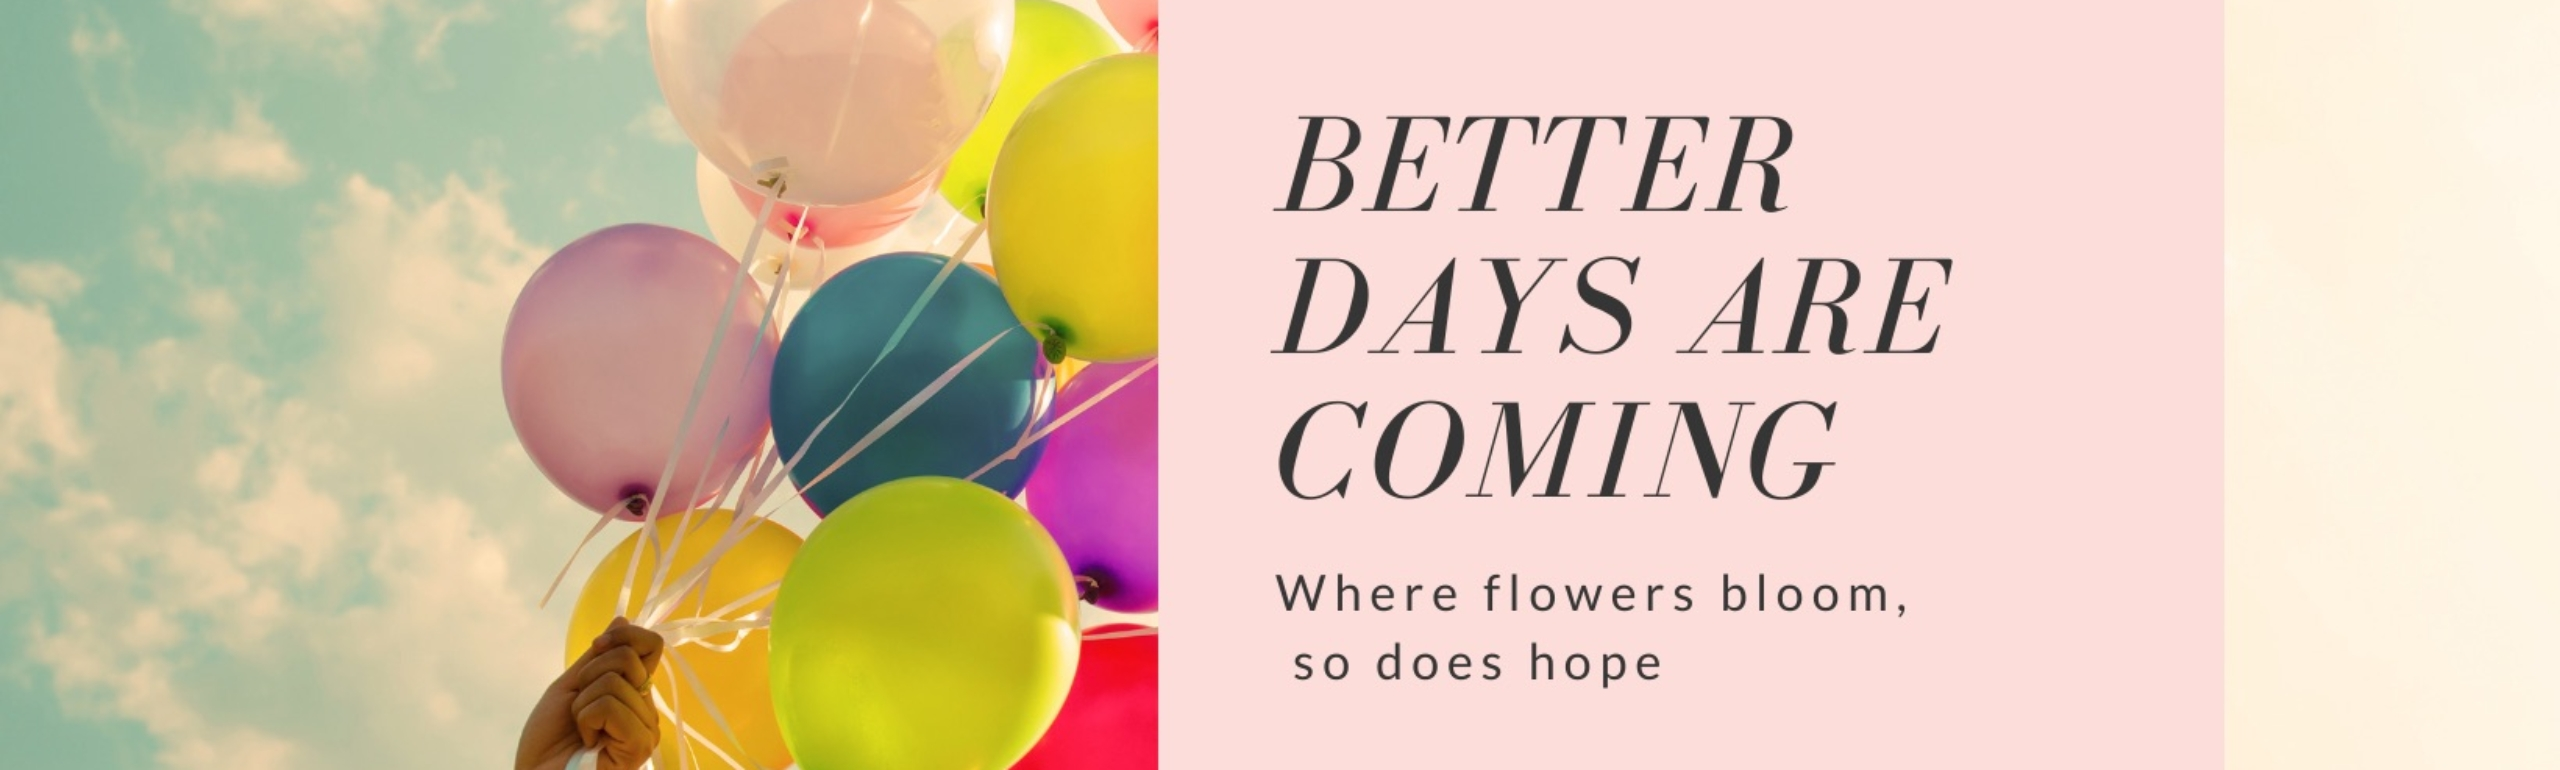 Better days are coming